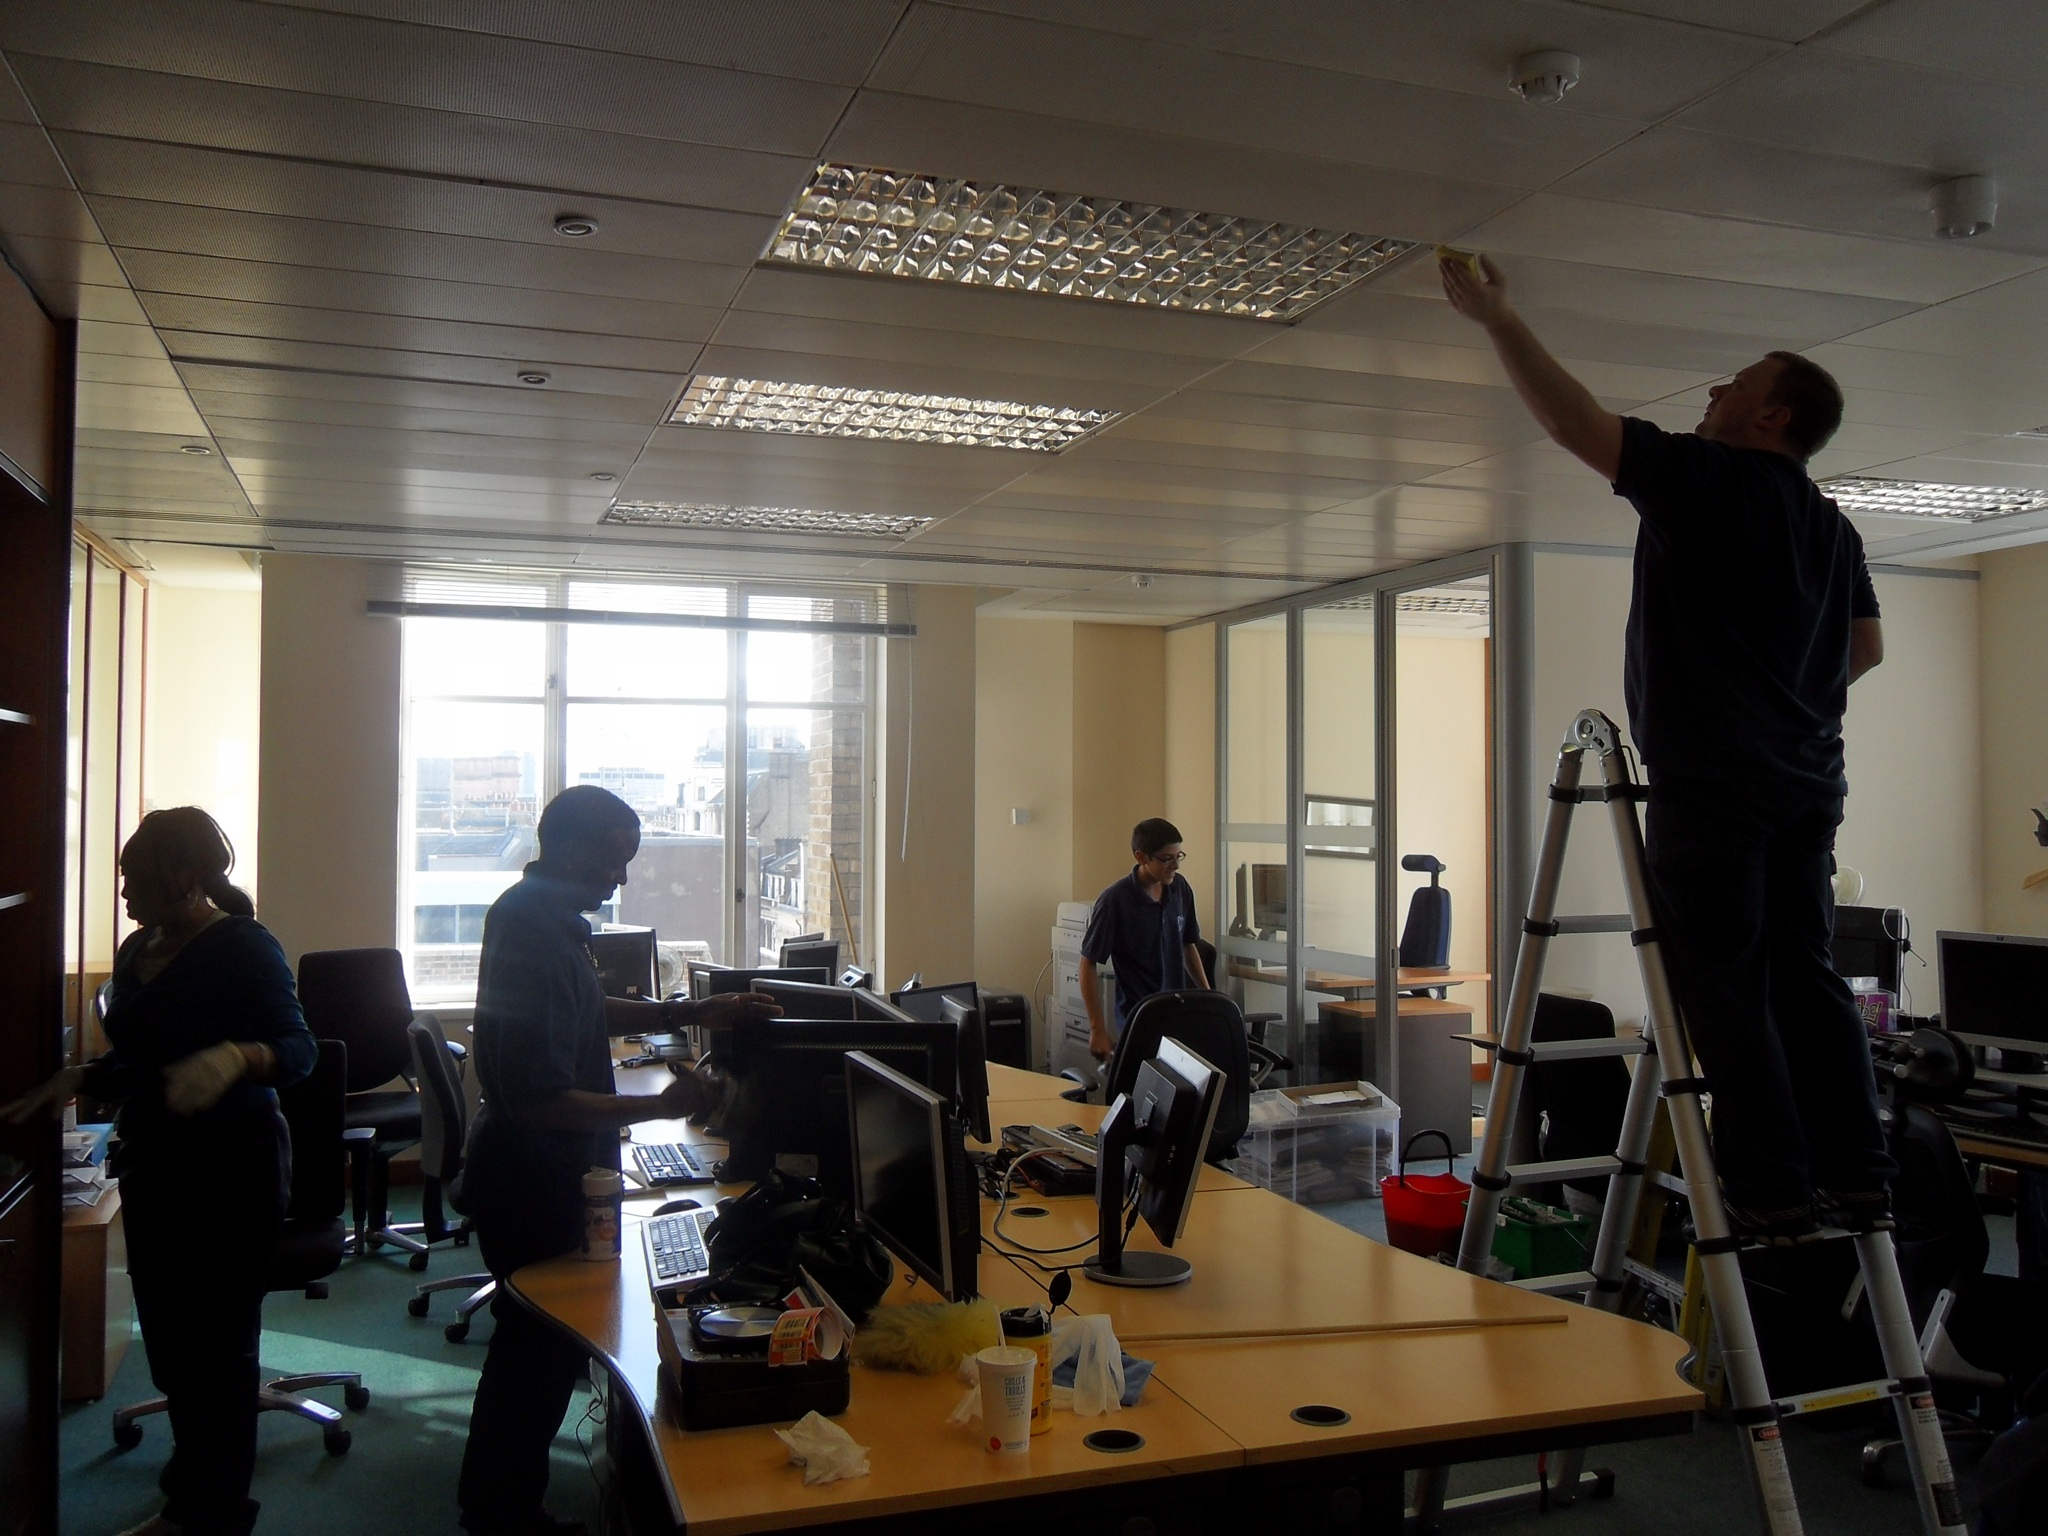 Office Cleaning by Nationwide Cleaning Services